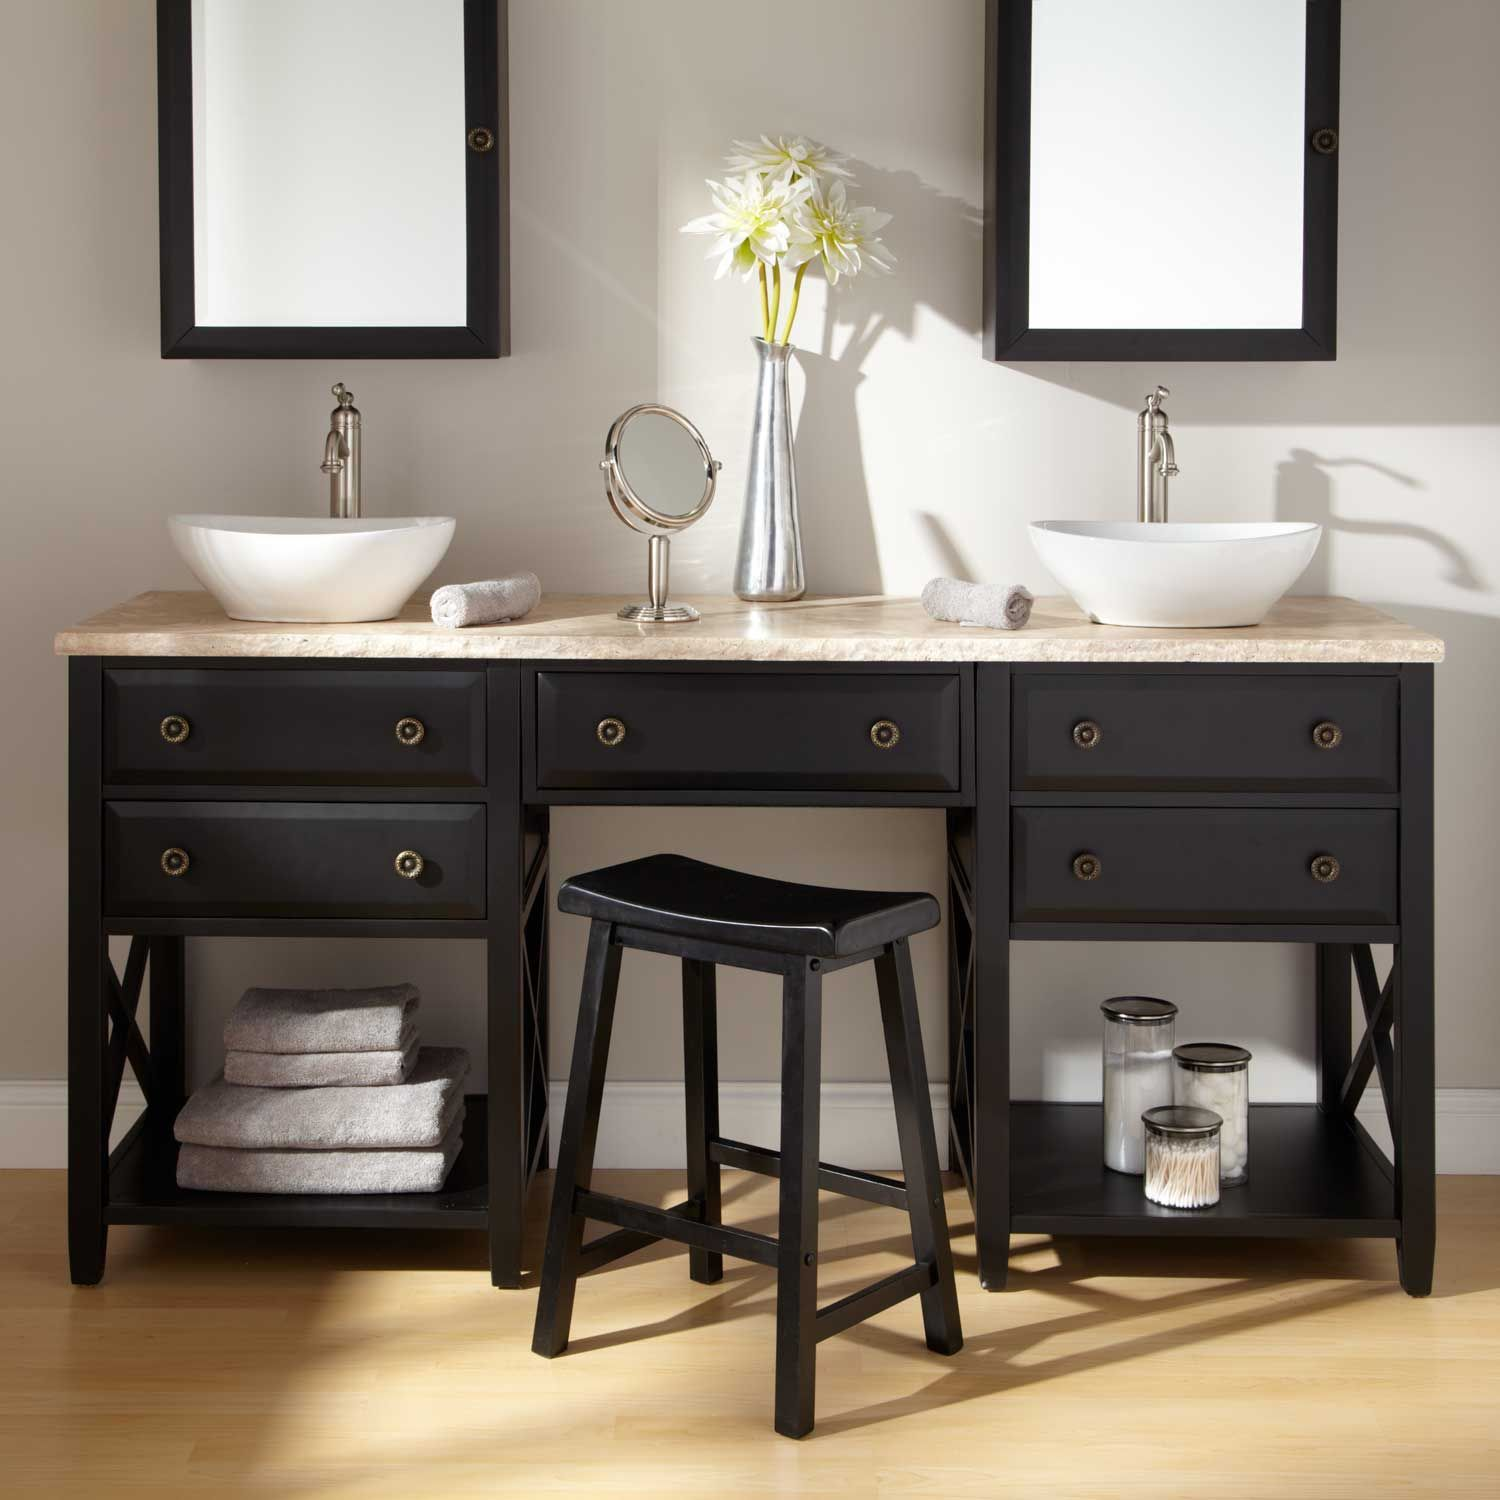 Double Vessel Sink Vanities Vanities 72 Clinton Black Double Vanity For Vessel Sinks With